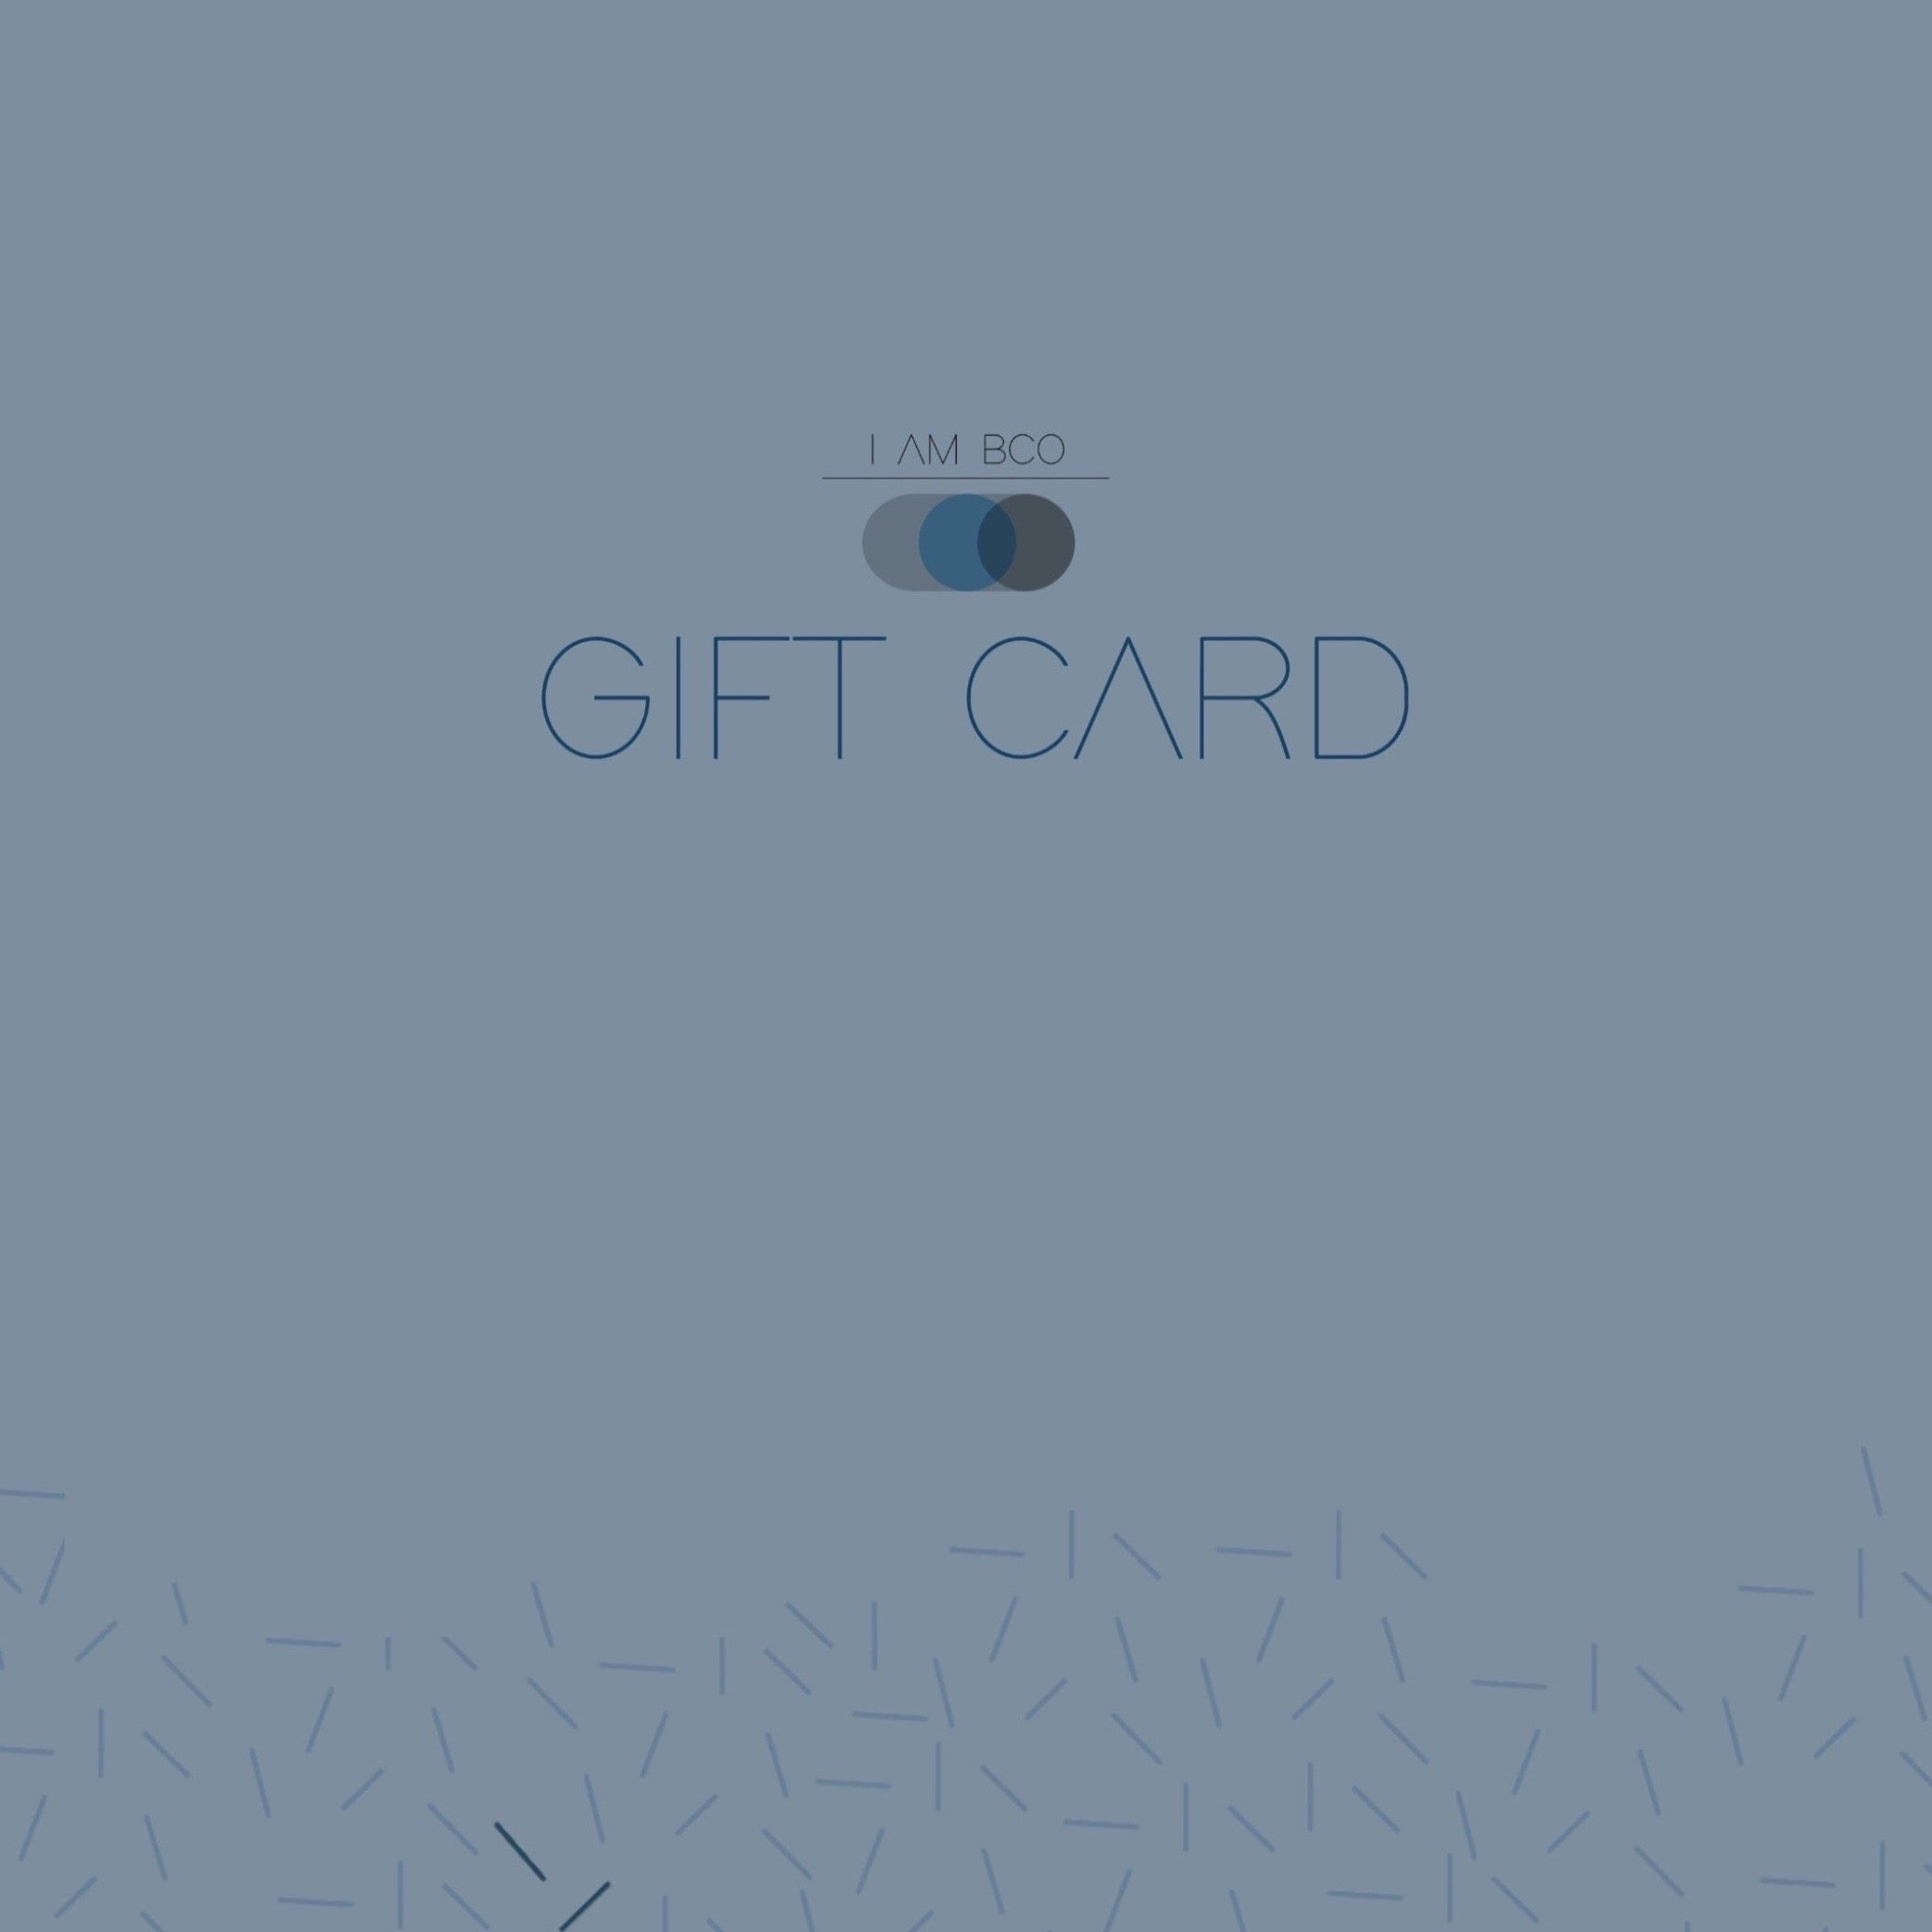 I AM BCO Gift Cards